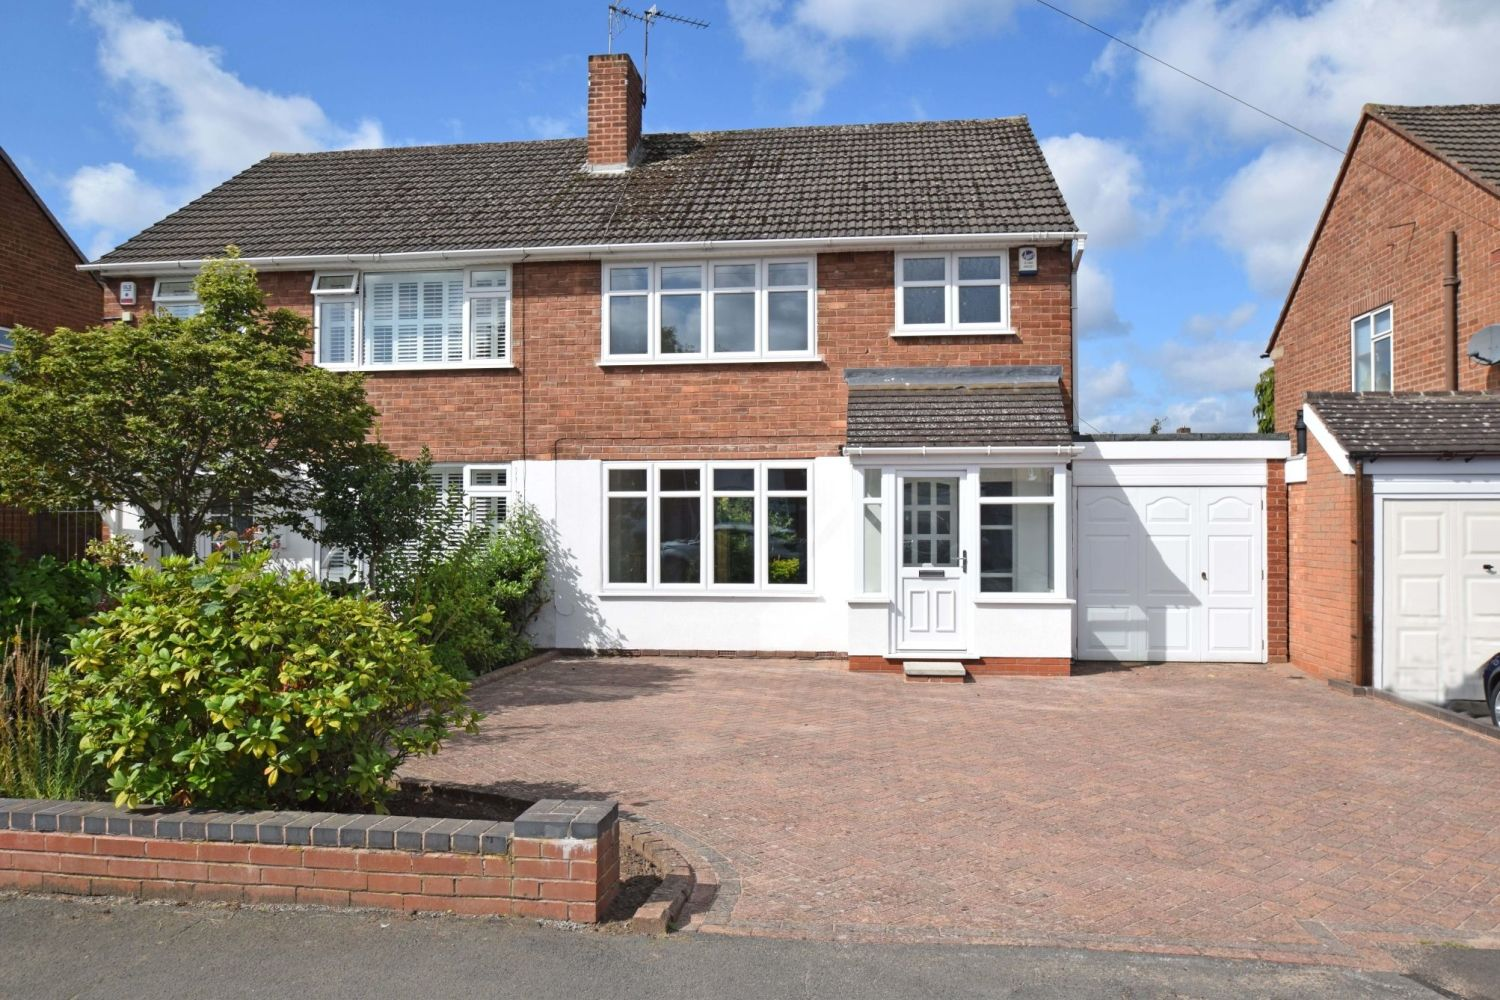 3 bed semi-detached for sale in Beachcroft Road, Wall Heath 1